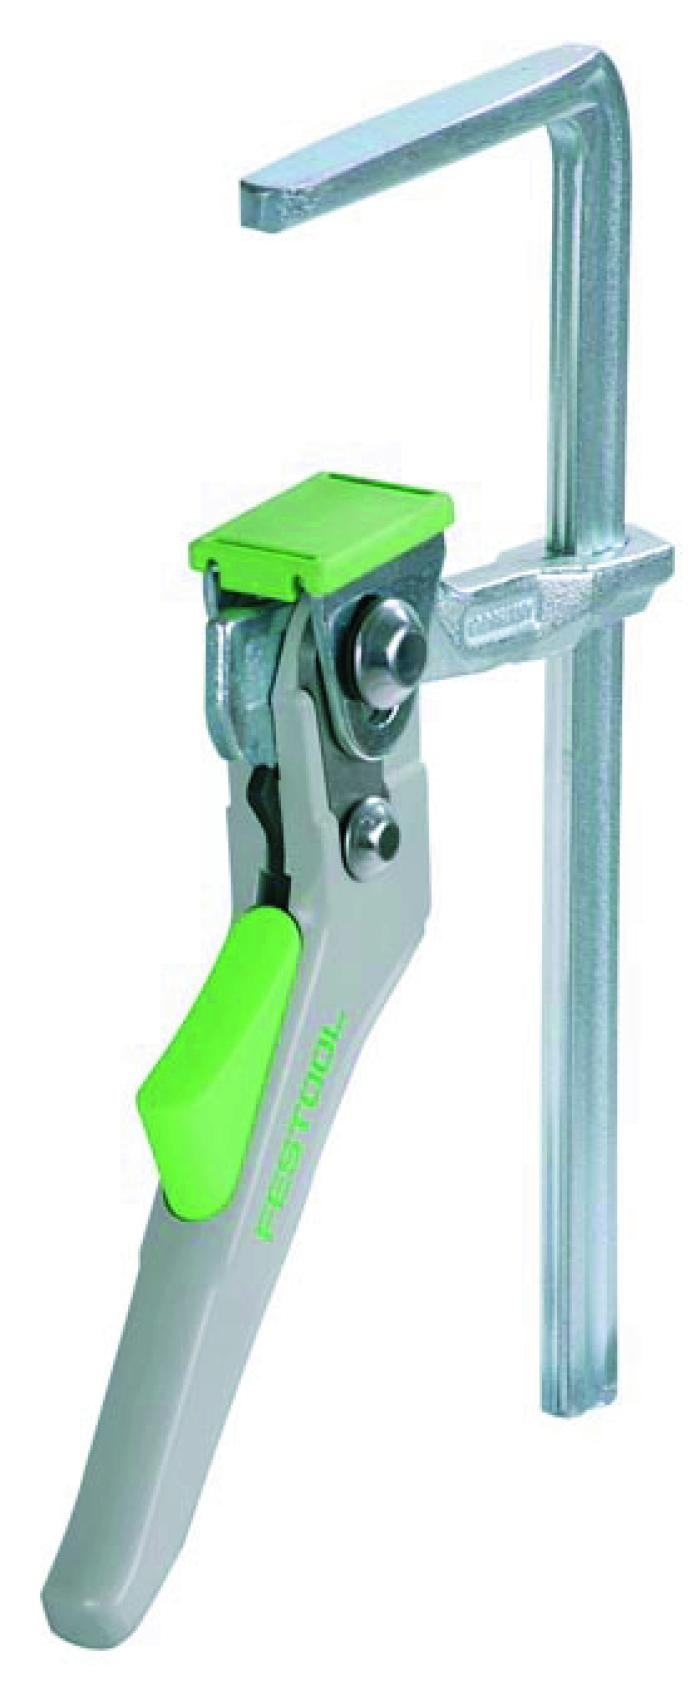 Substitute For Clamping Elements Festool Owners Group Akrossinfo